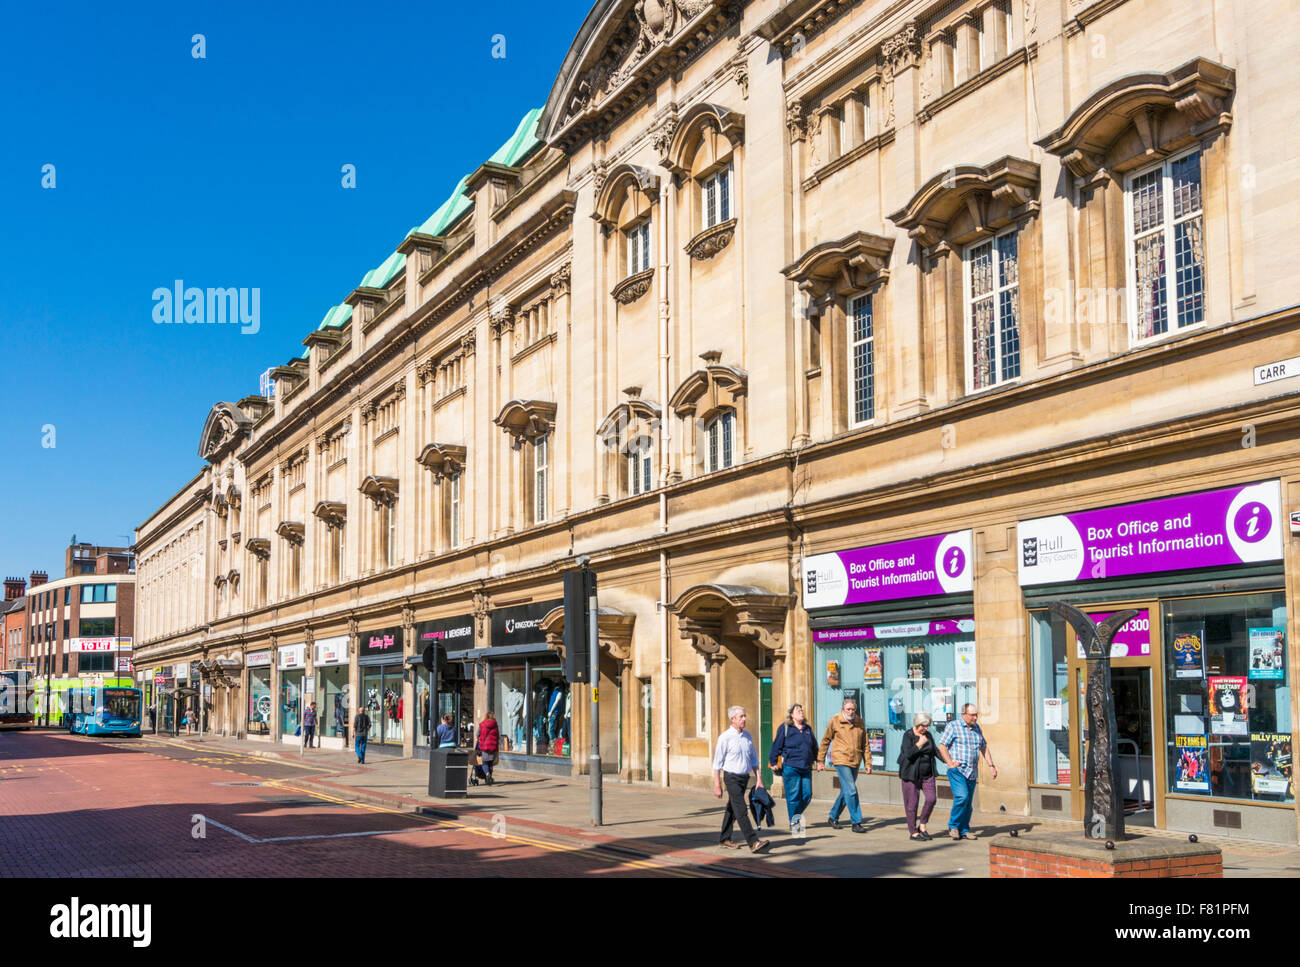 hull city hall box office et informations touristiques sur carr lane kingston upon hull yorkshire angleterre uk gb eu europe